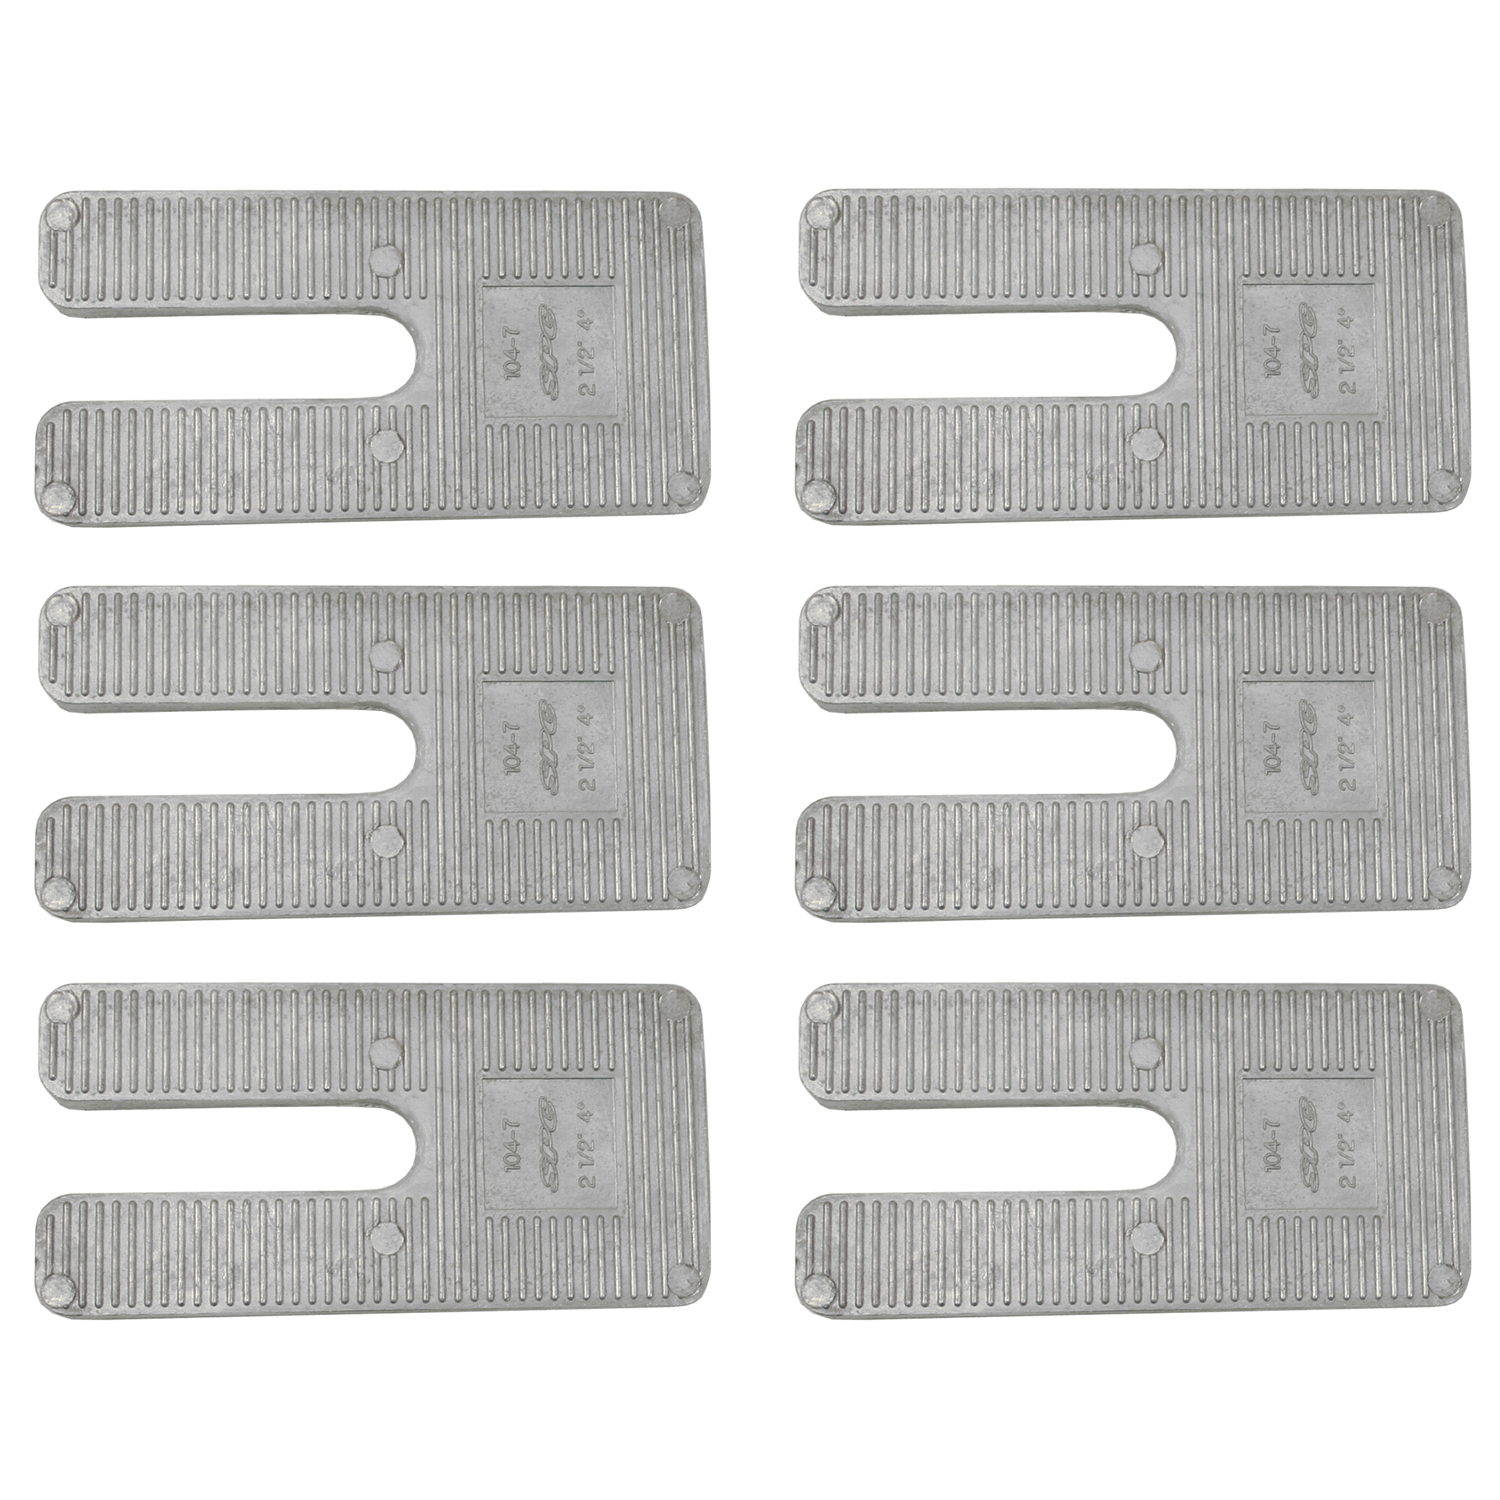 Alignment Caster Wedge Multi-Pack